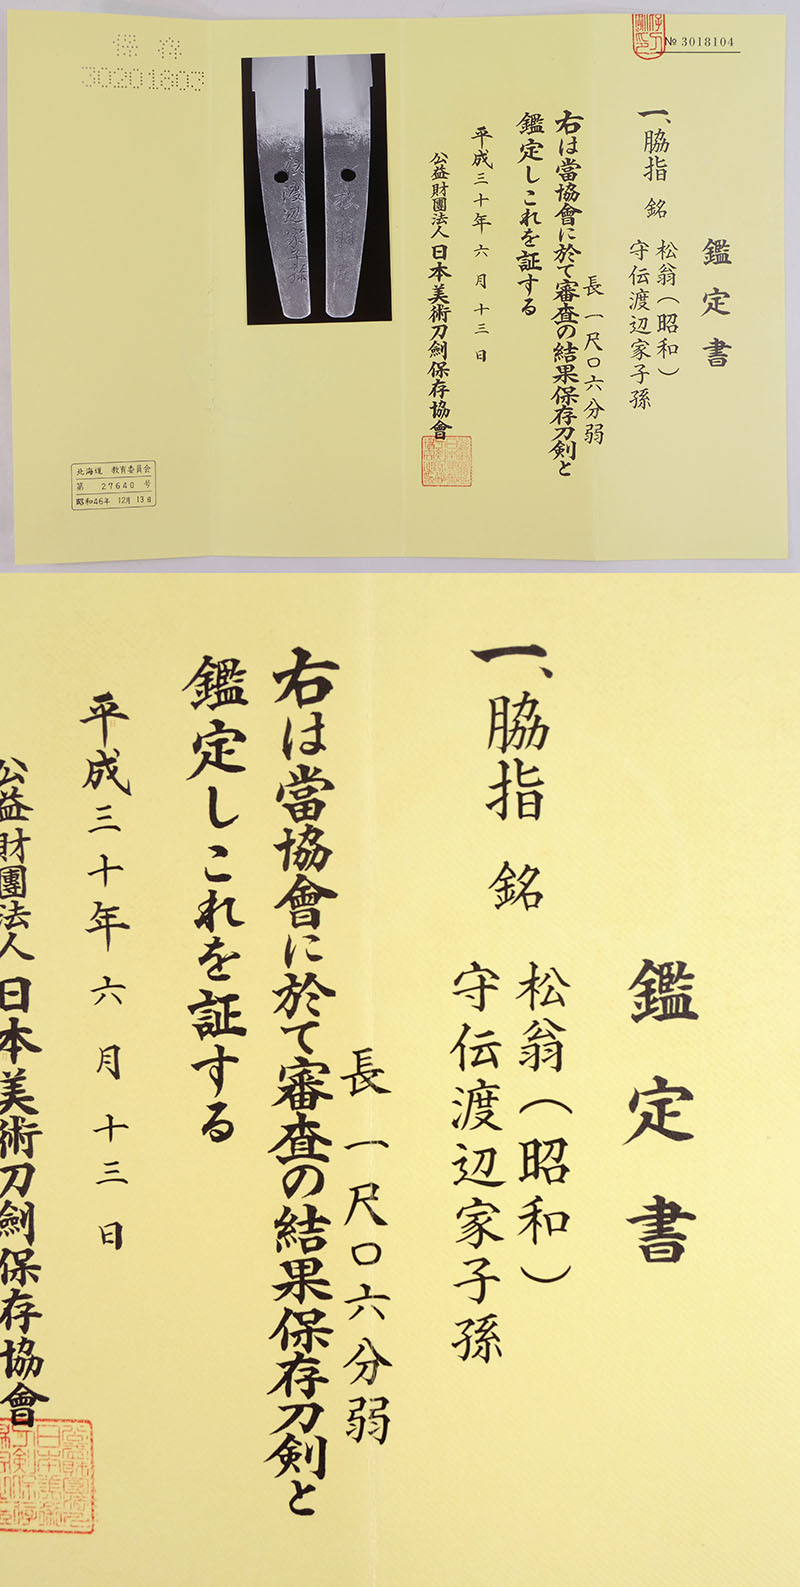 松翁(昭和) Picture of Certificate